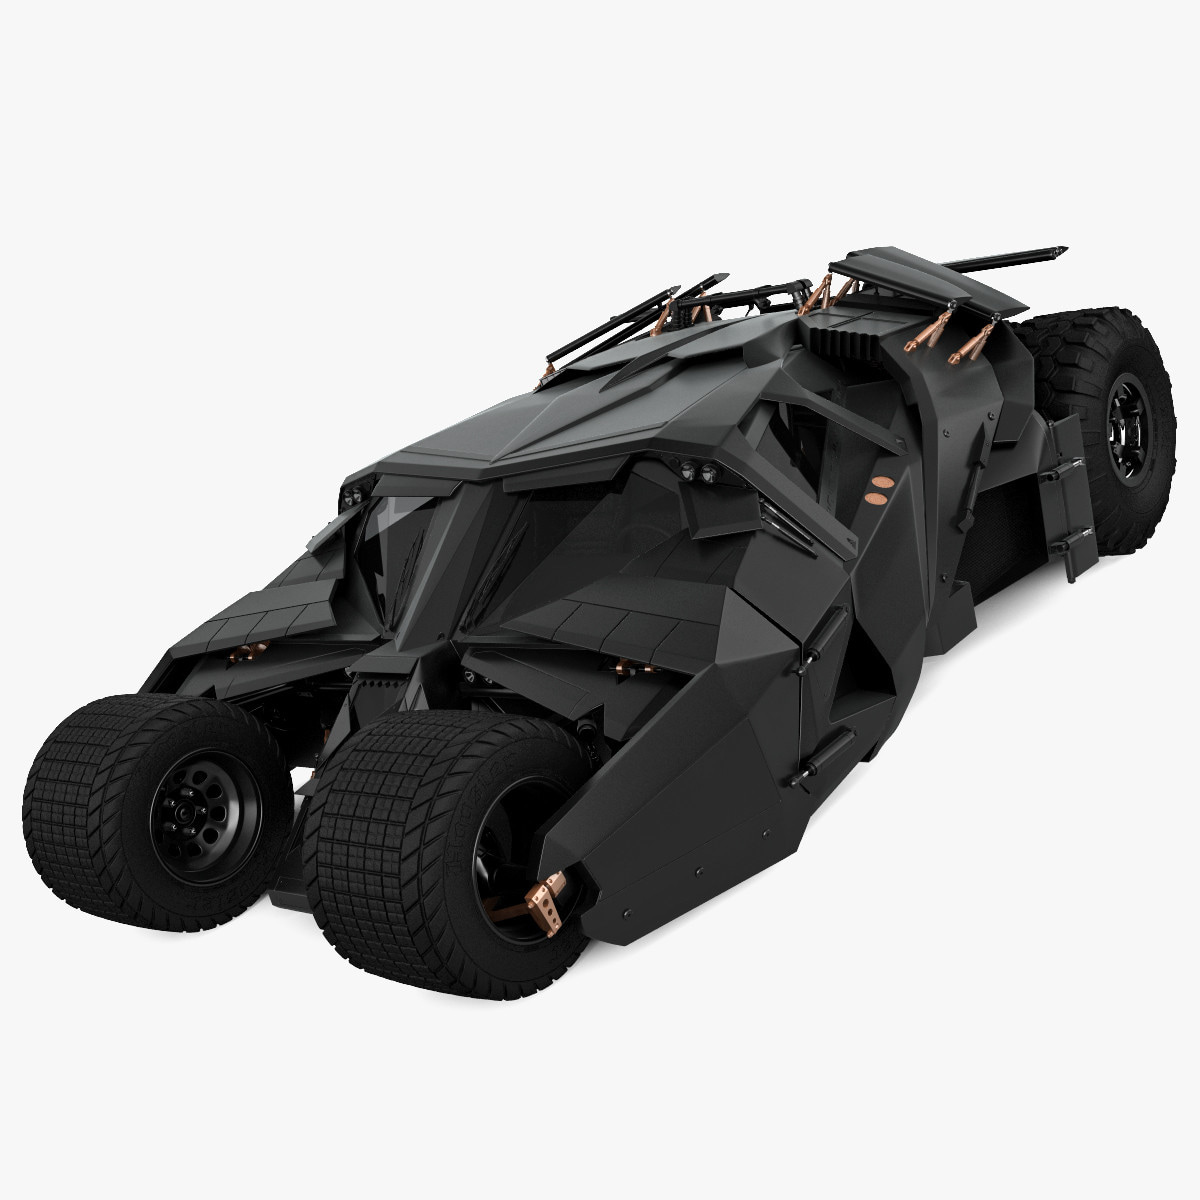 Batmobile_Tumbler_0_1.jpg